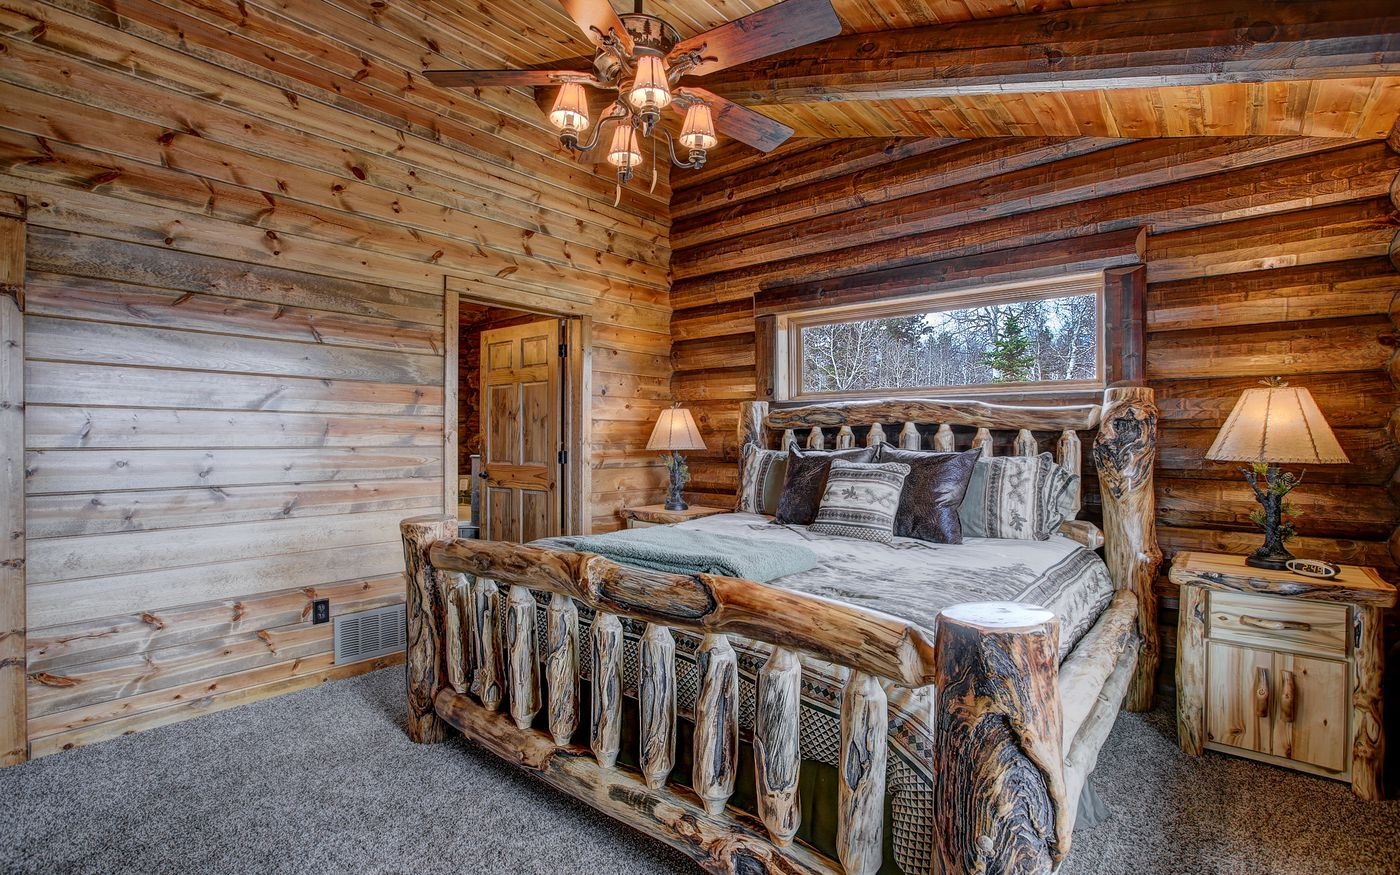 Log cabin kits let you build your dream mountain retreat